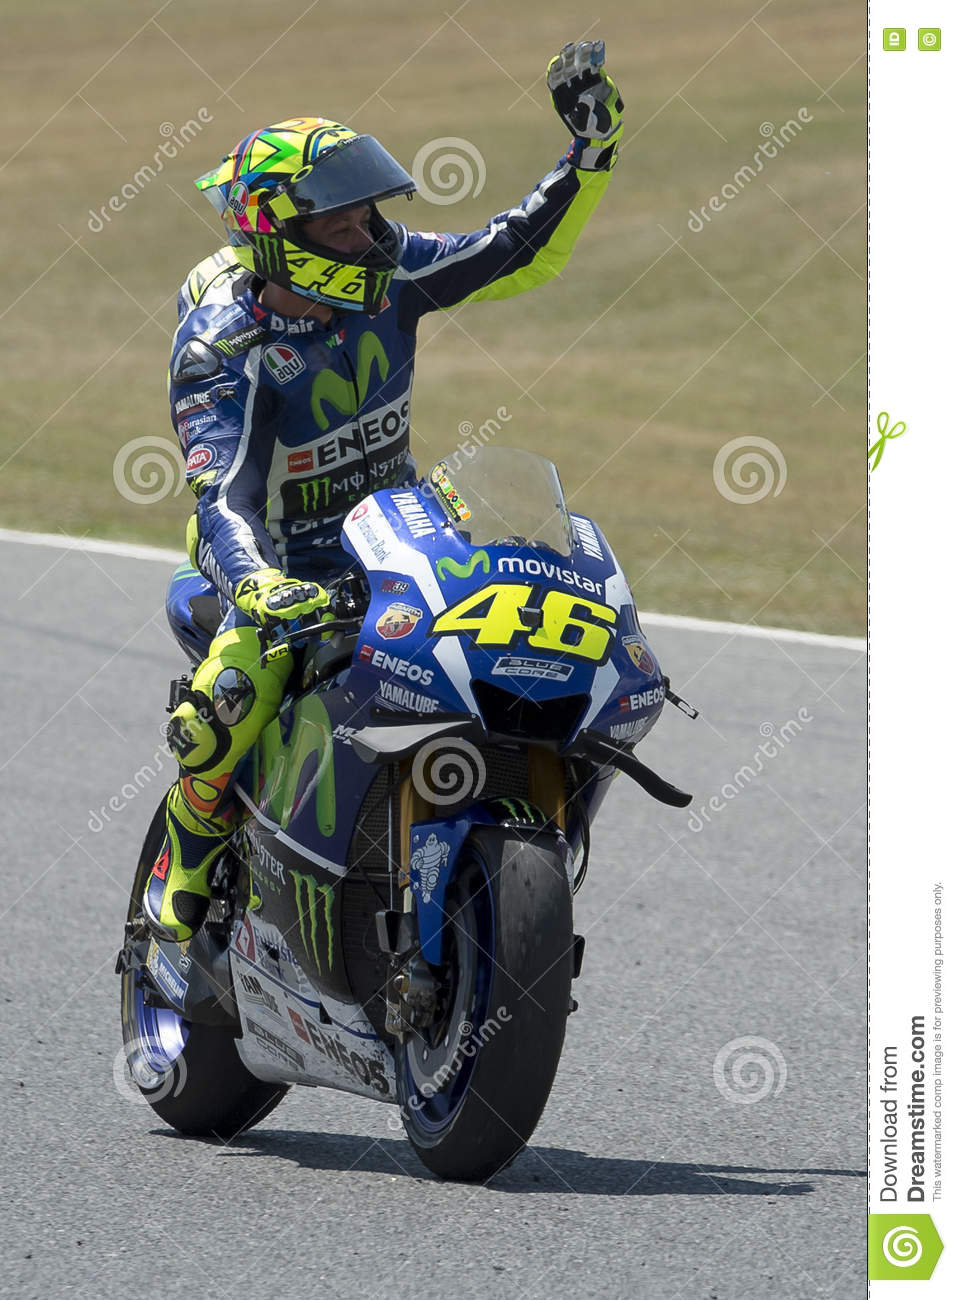 Download Motogp Catalunya 2016 : download, motogp, catalunya, Driver, Valentino, Rossi, Editorial, Image, Motorcycling,, Monster:, 72506725